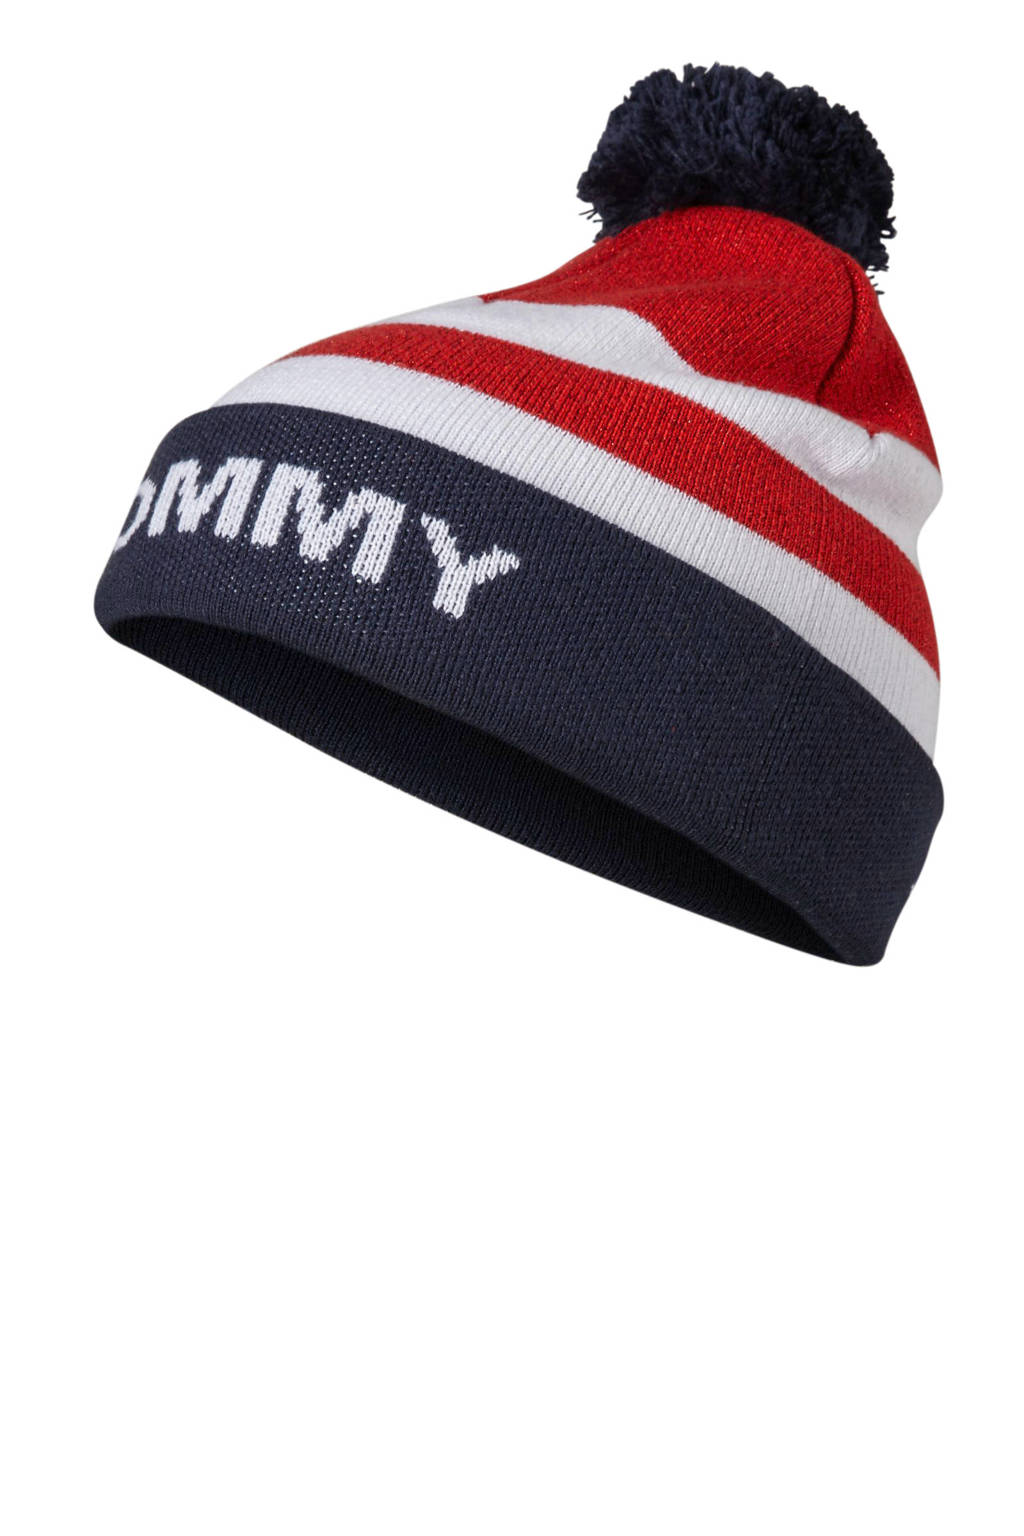 Tommy Hilfiger muts Americana Beanie rood, Rood/wit/marine